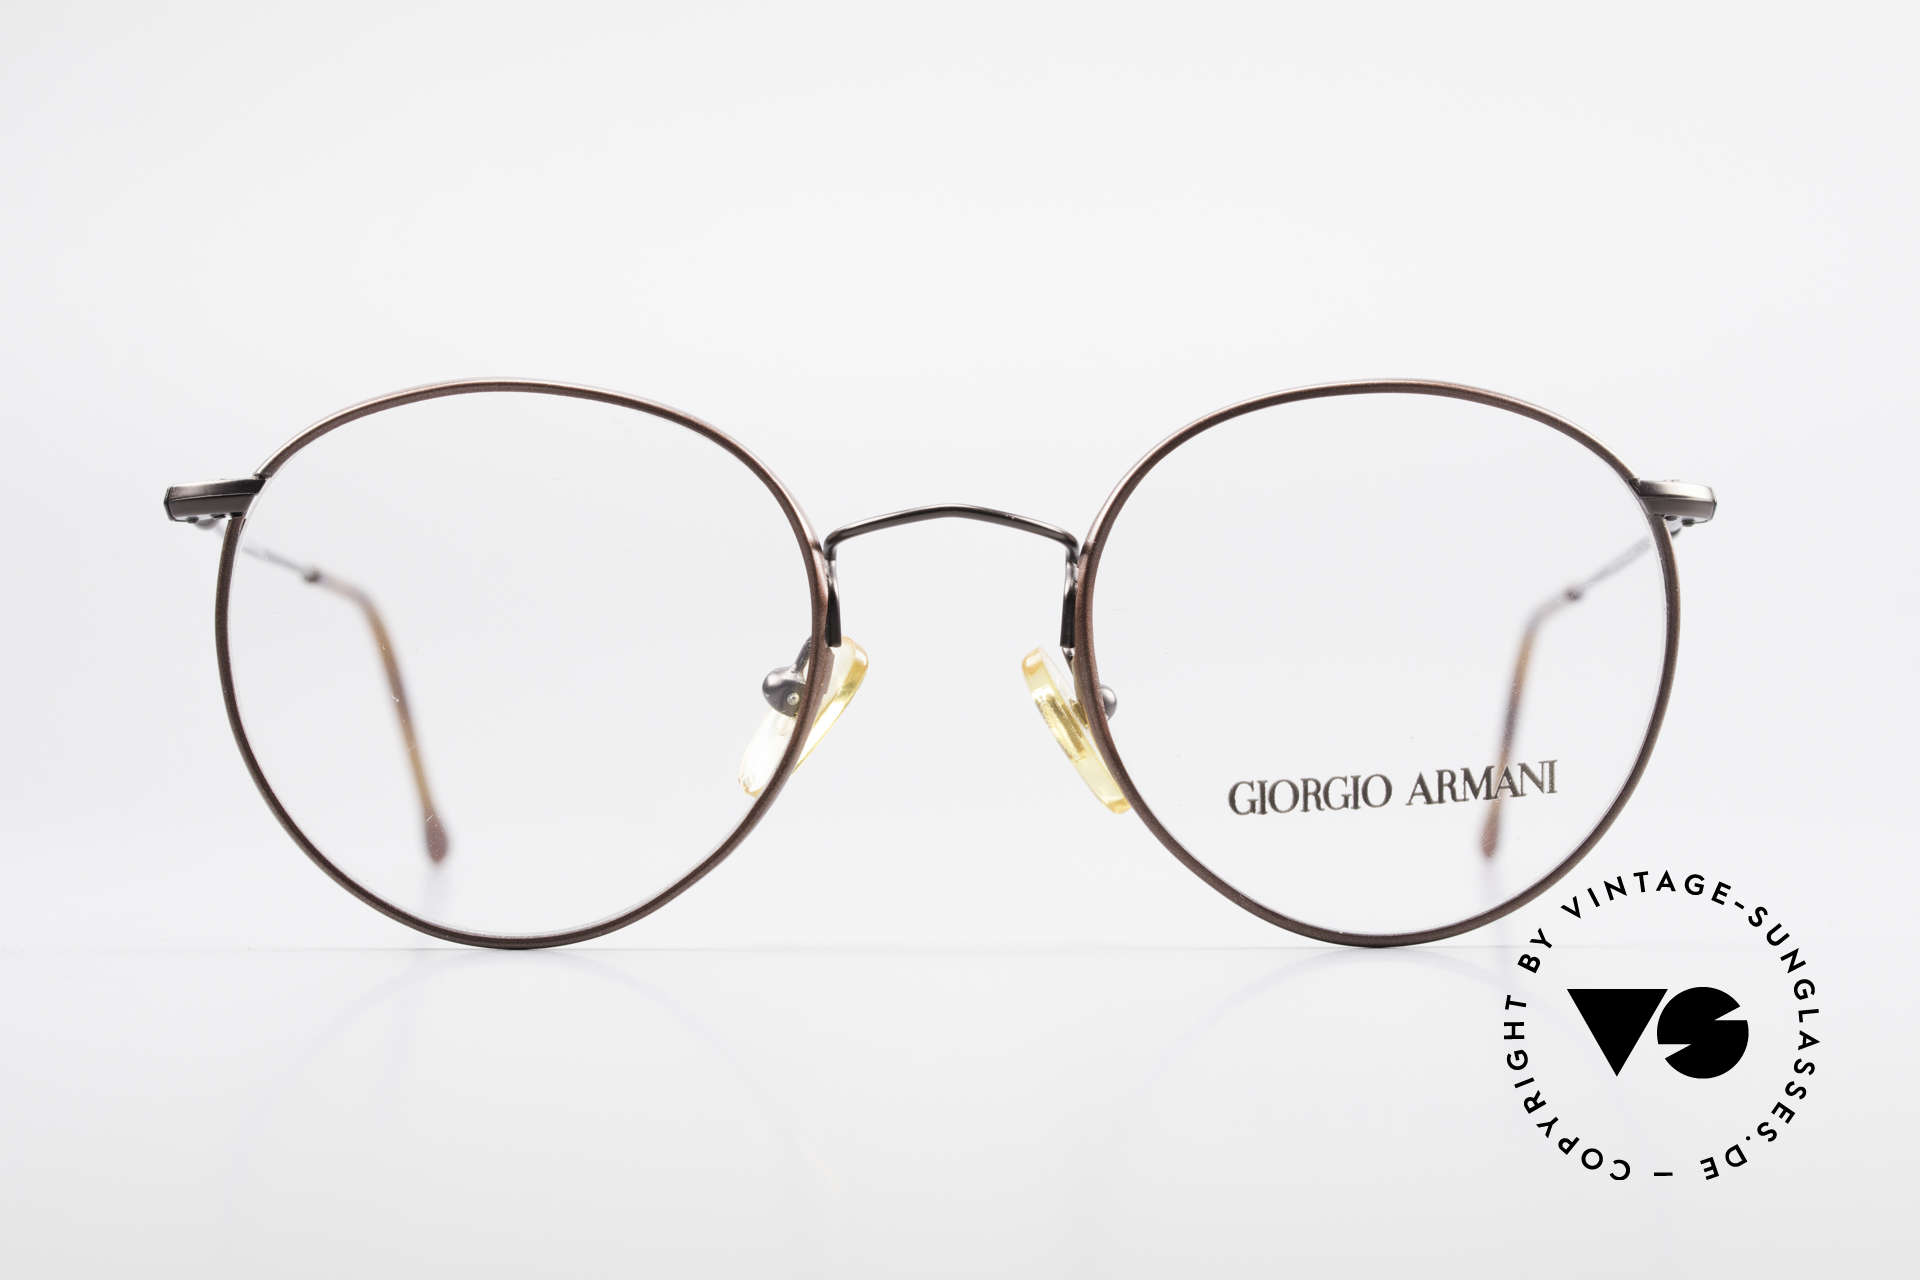 Giorgio Armani 253 Panto Vintage Frame Clip On, Size: small, Made for Men